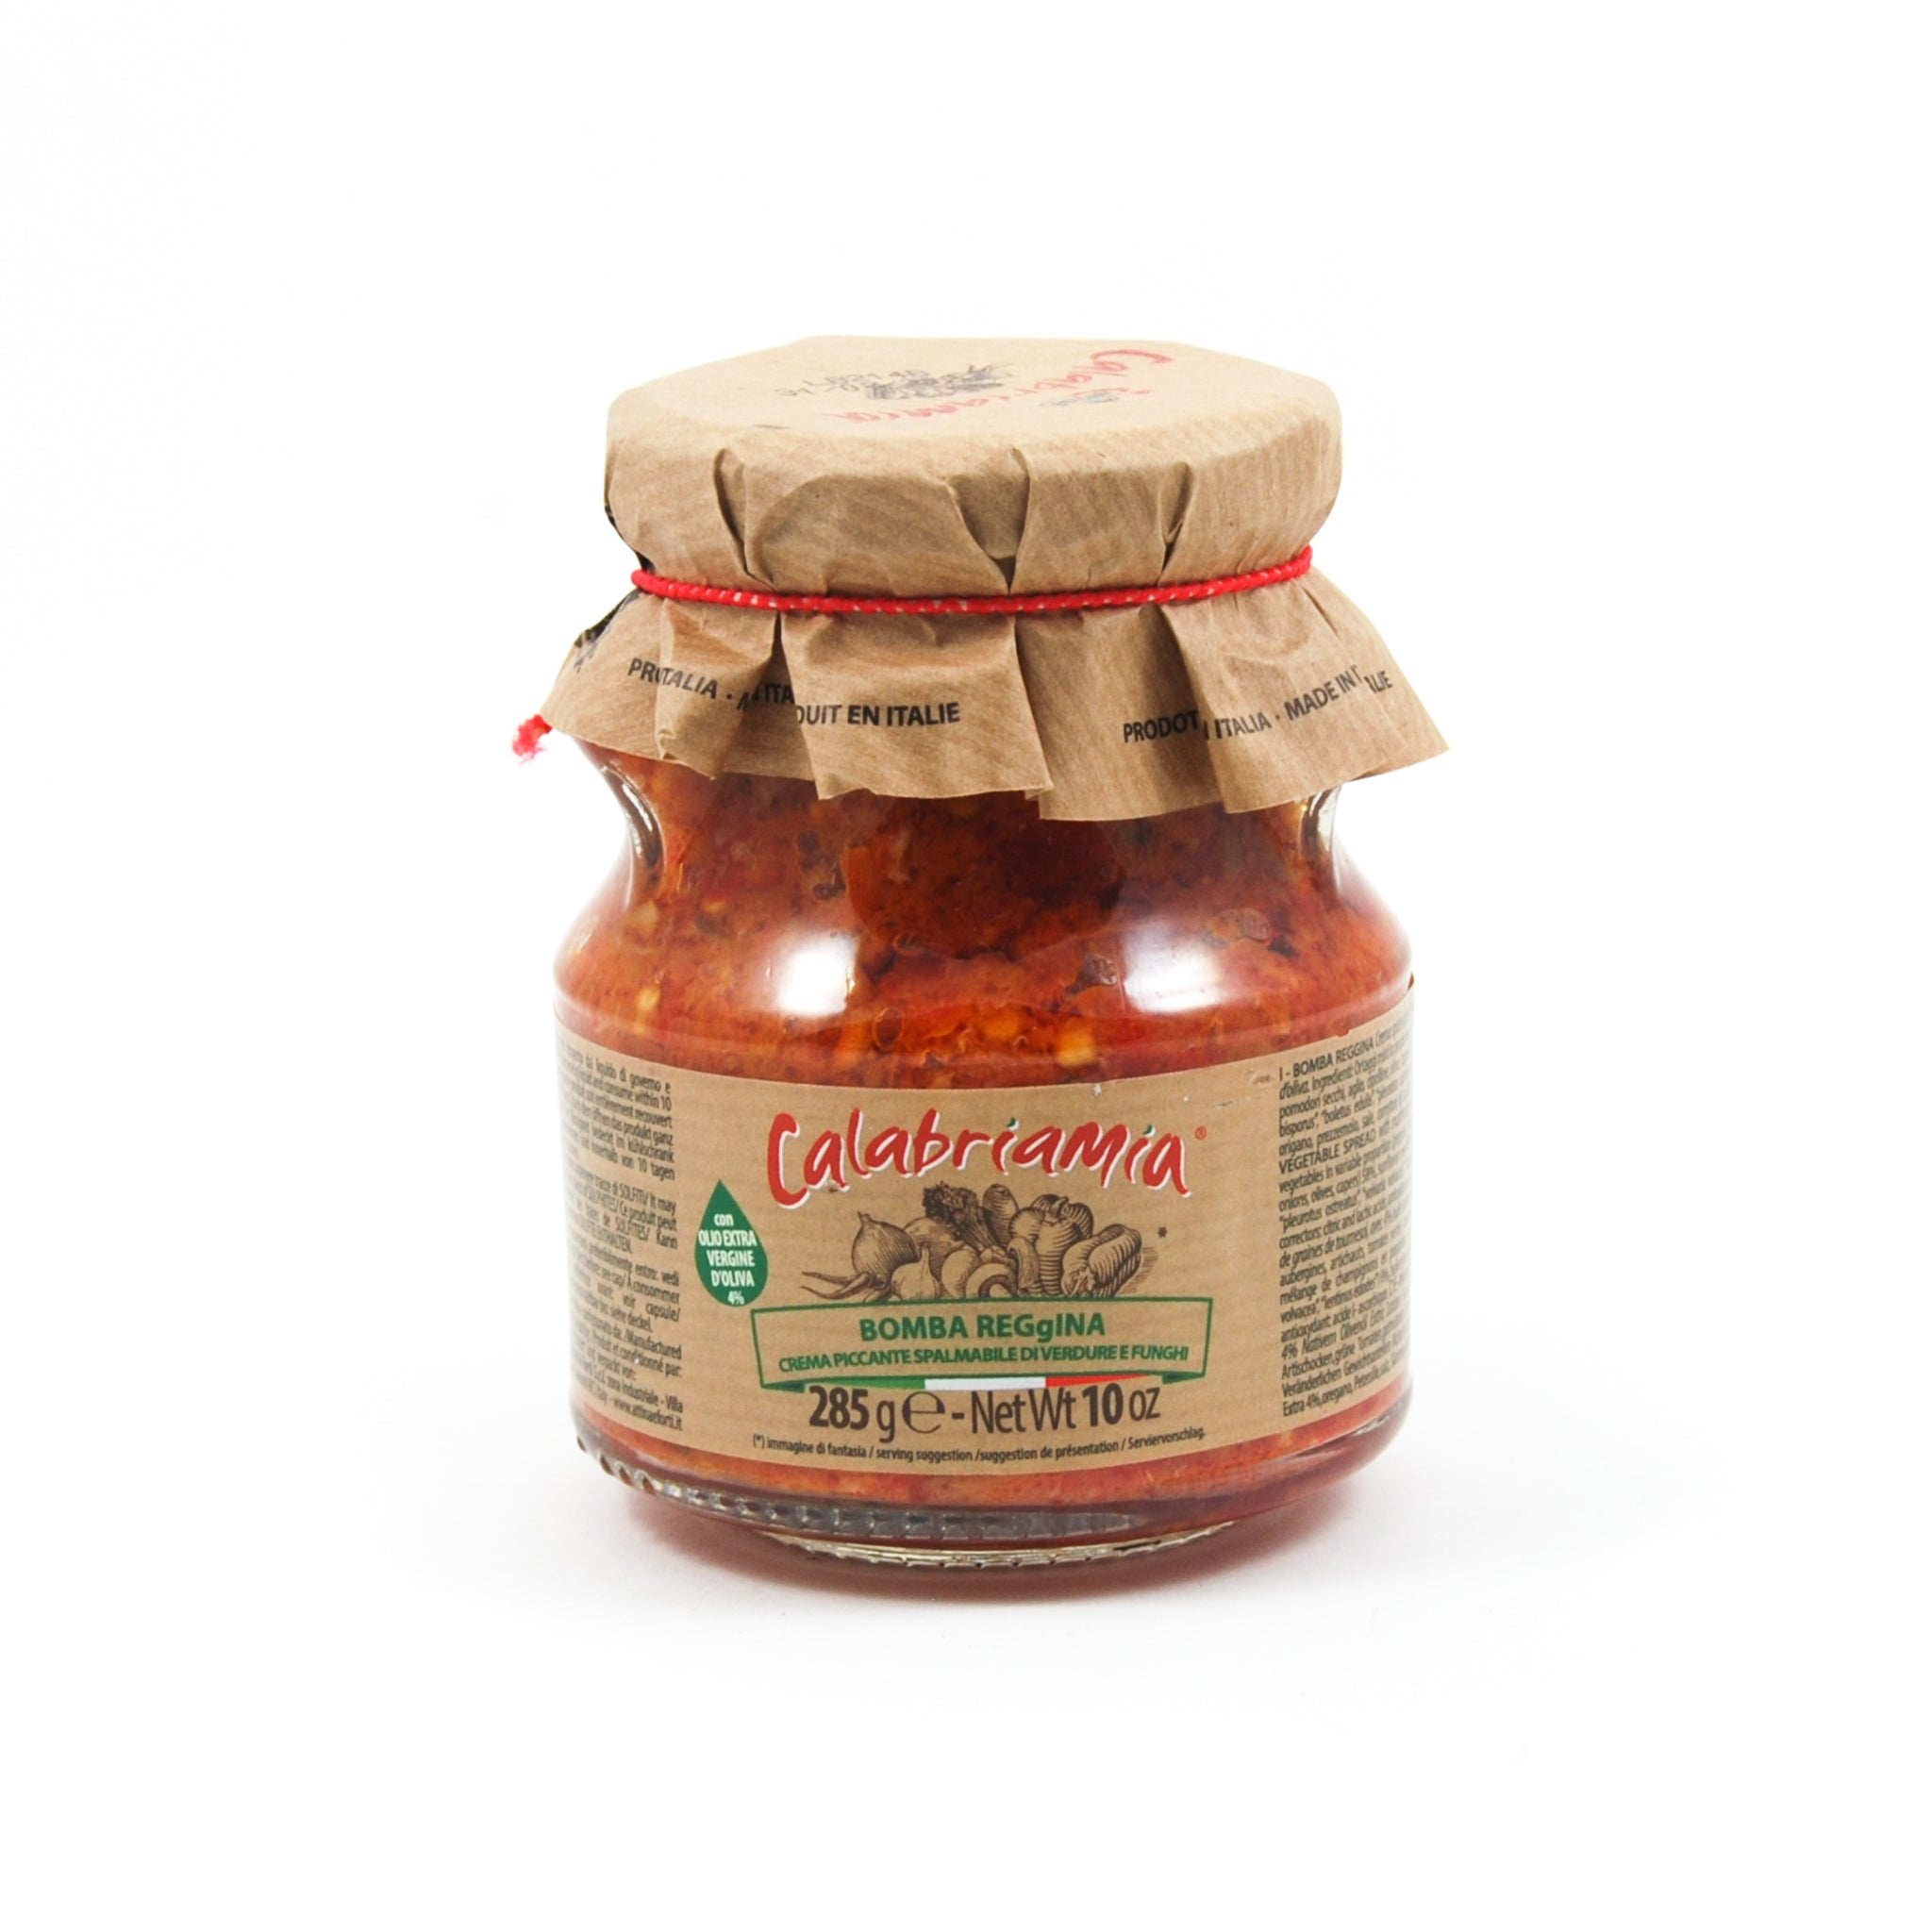 Calabriamia Bomba Calabrese Spicy Calabrian Vegetable Spread 314g Ingredients Jam Honey & Preserves Italian Food